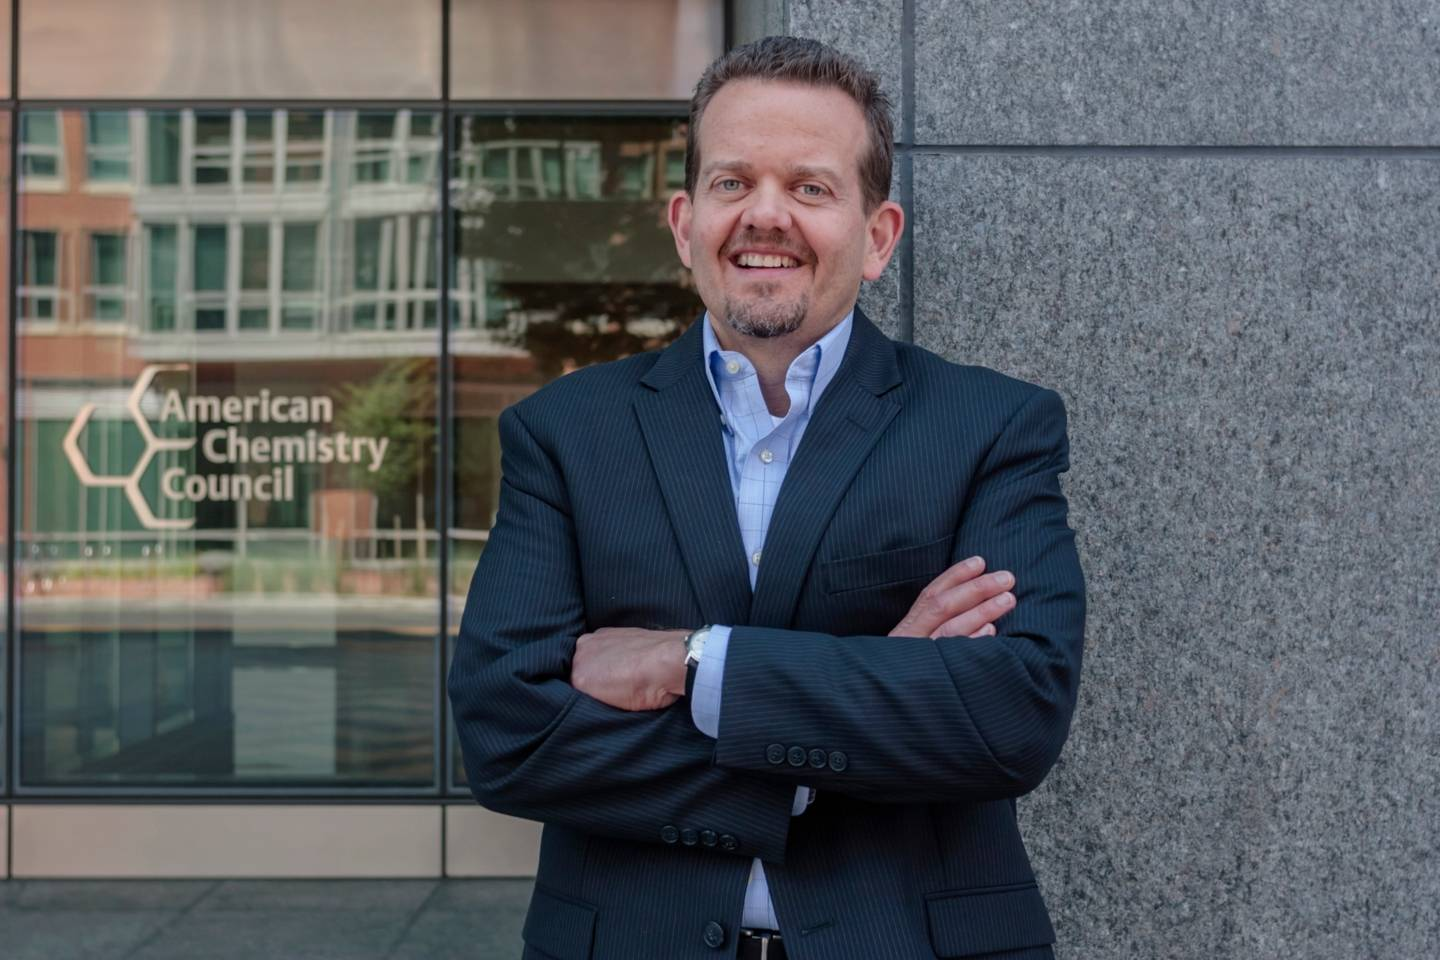 Keith Christman standing outside of the American Chemistry Council